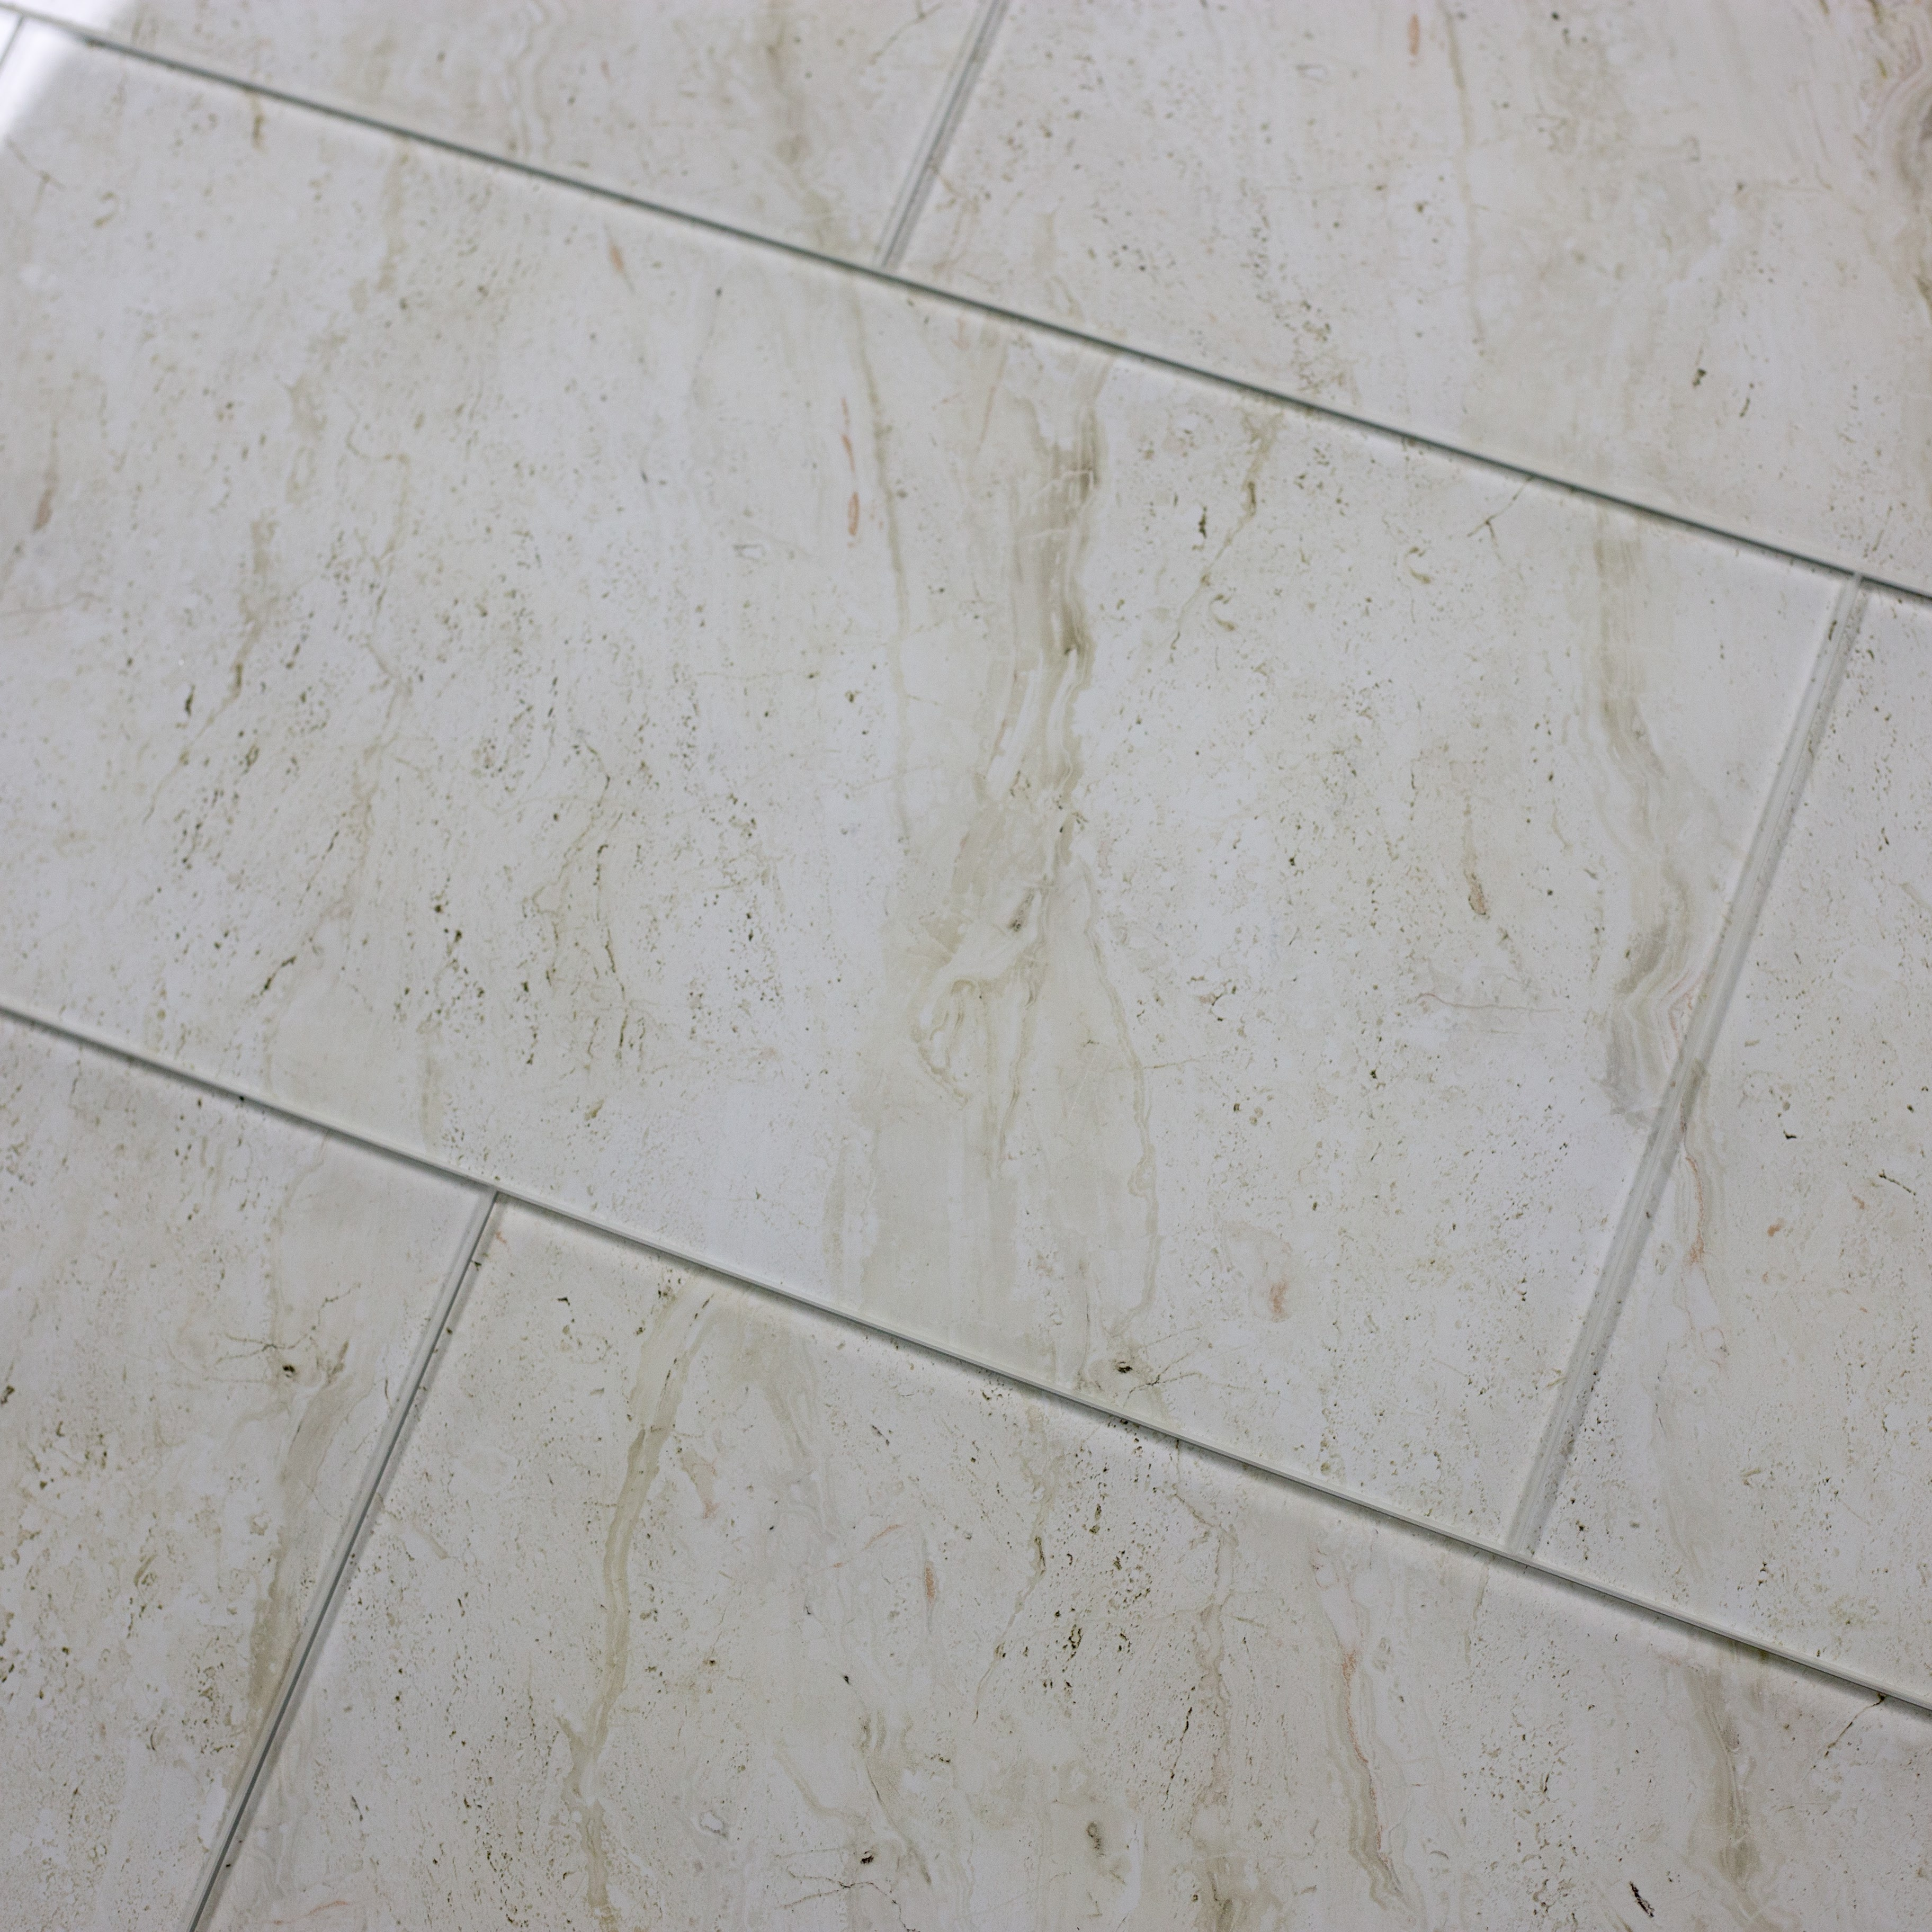 Nature 8 X 16 Gl Marble Look Tile In Crema Marfil Is Available For Purchase Increments Of 6